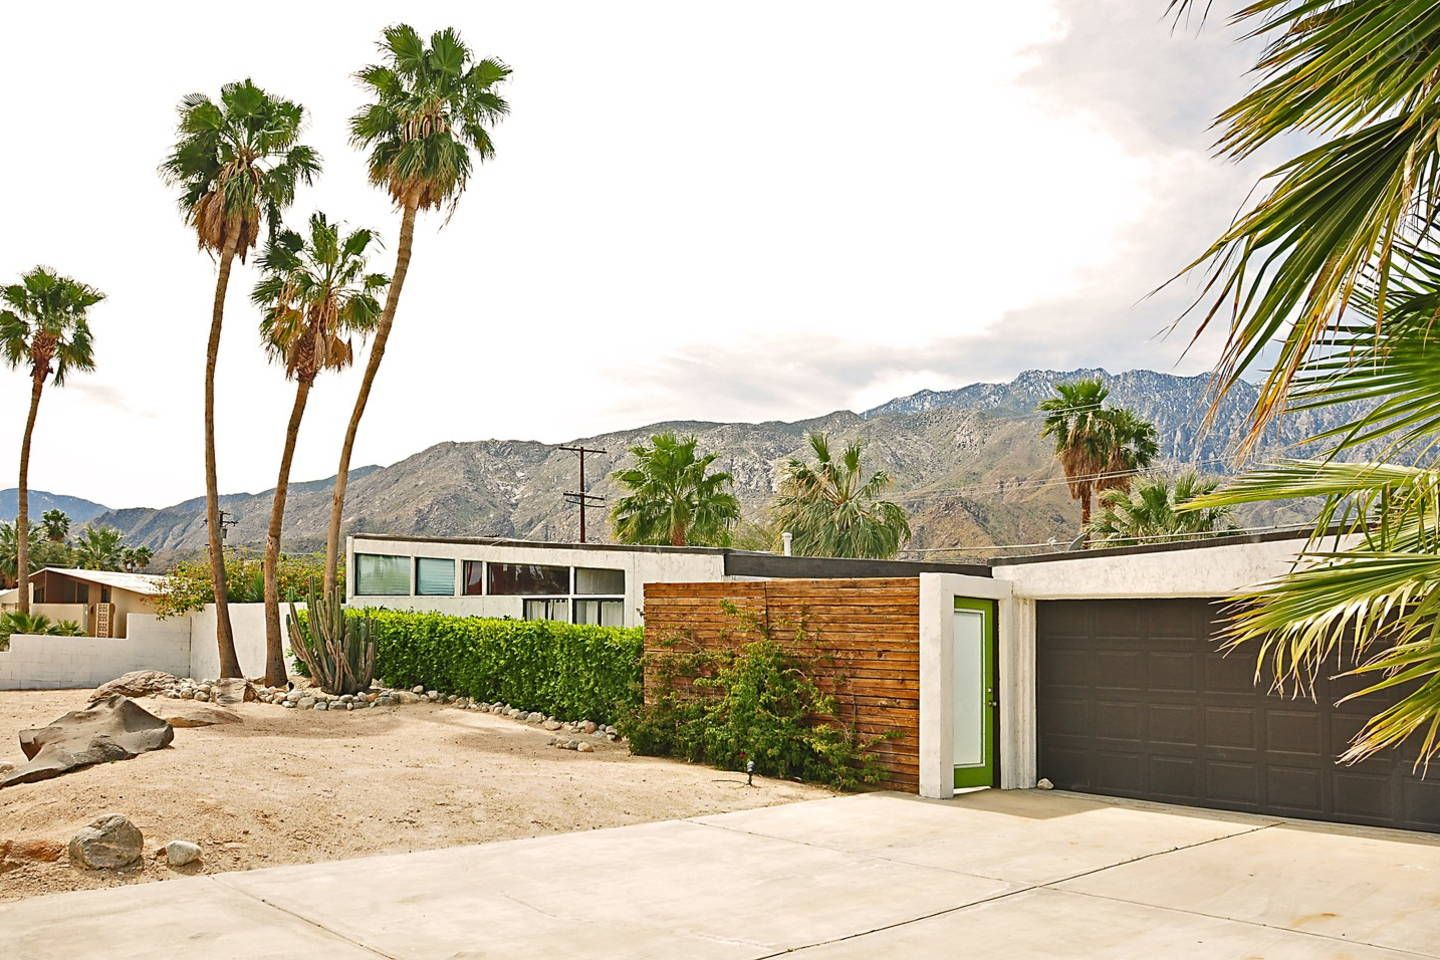 Iconic Mid Century Alexander Butterfly Roof Get Credit With - A mid century desert oasis in palm springs